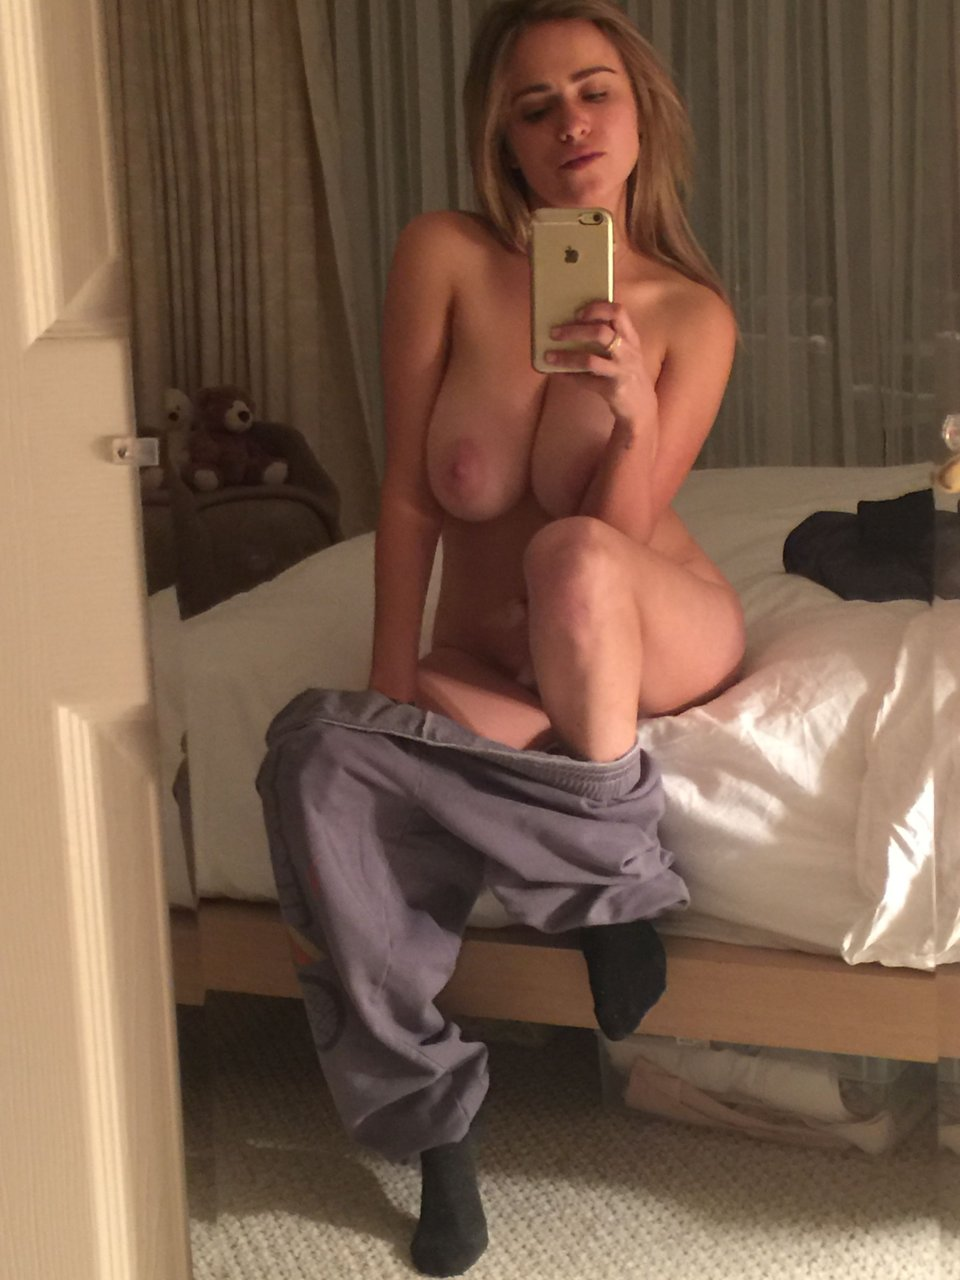 nicolle radzivil leaked 23 photos thefappening